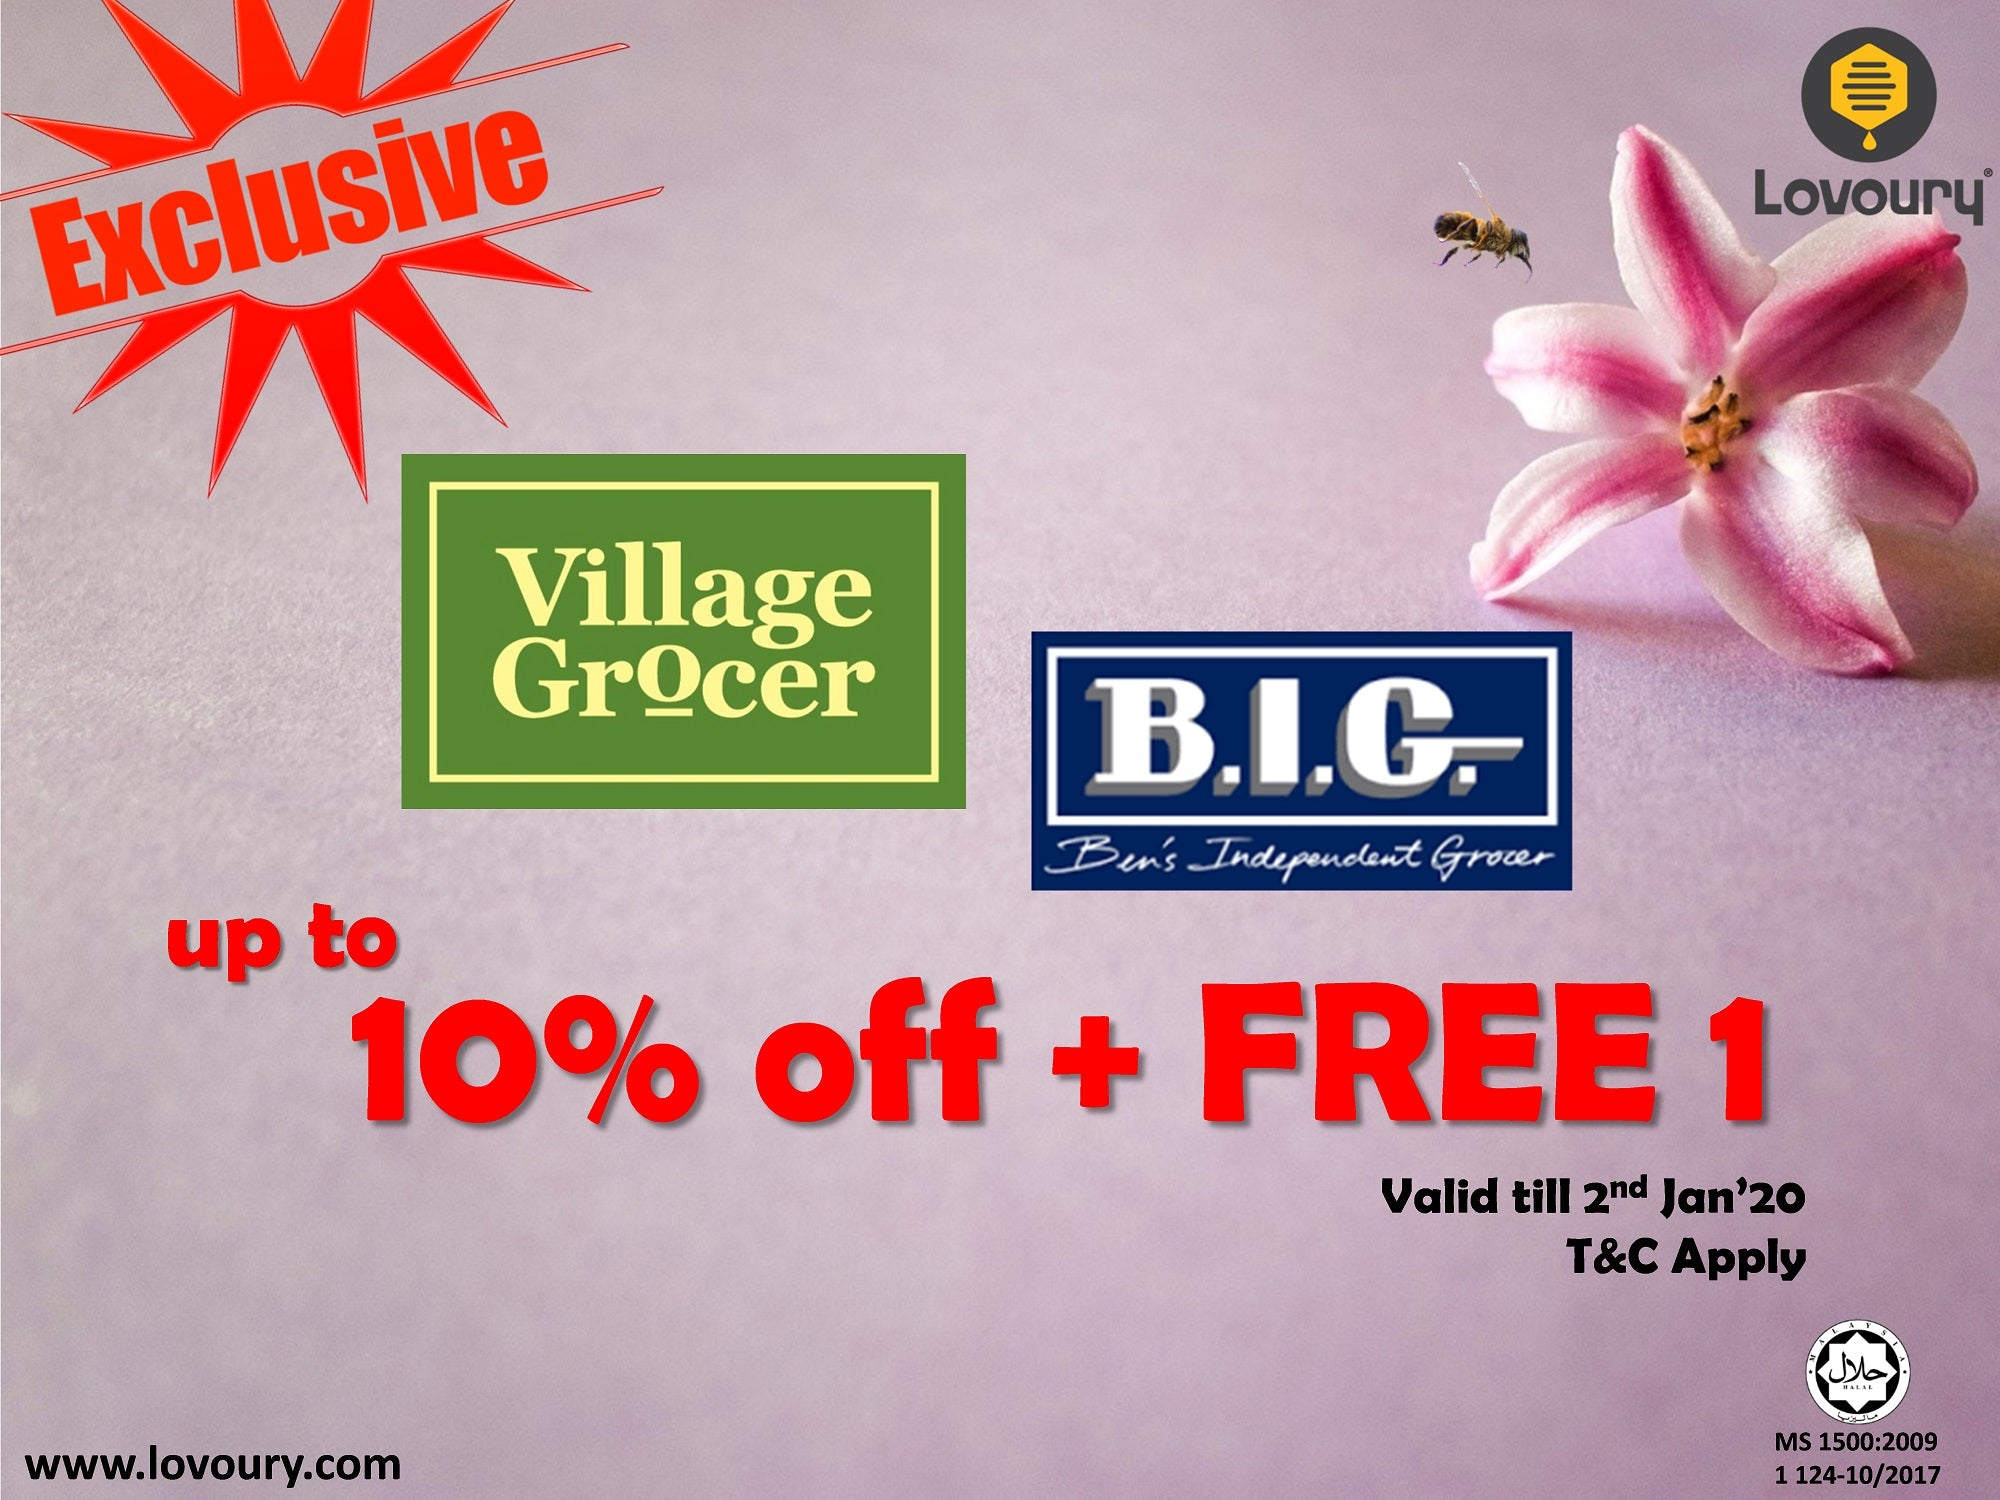 buy 1 free 1 exclusively for village grocer and ben's independent grocer